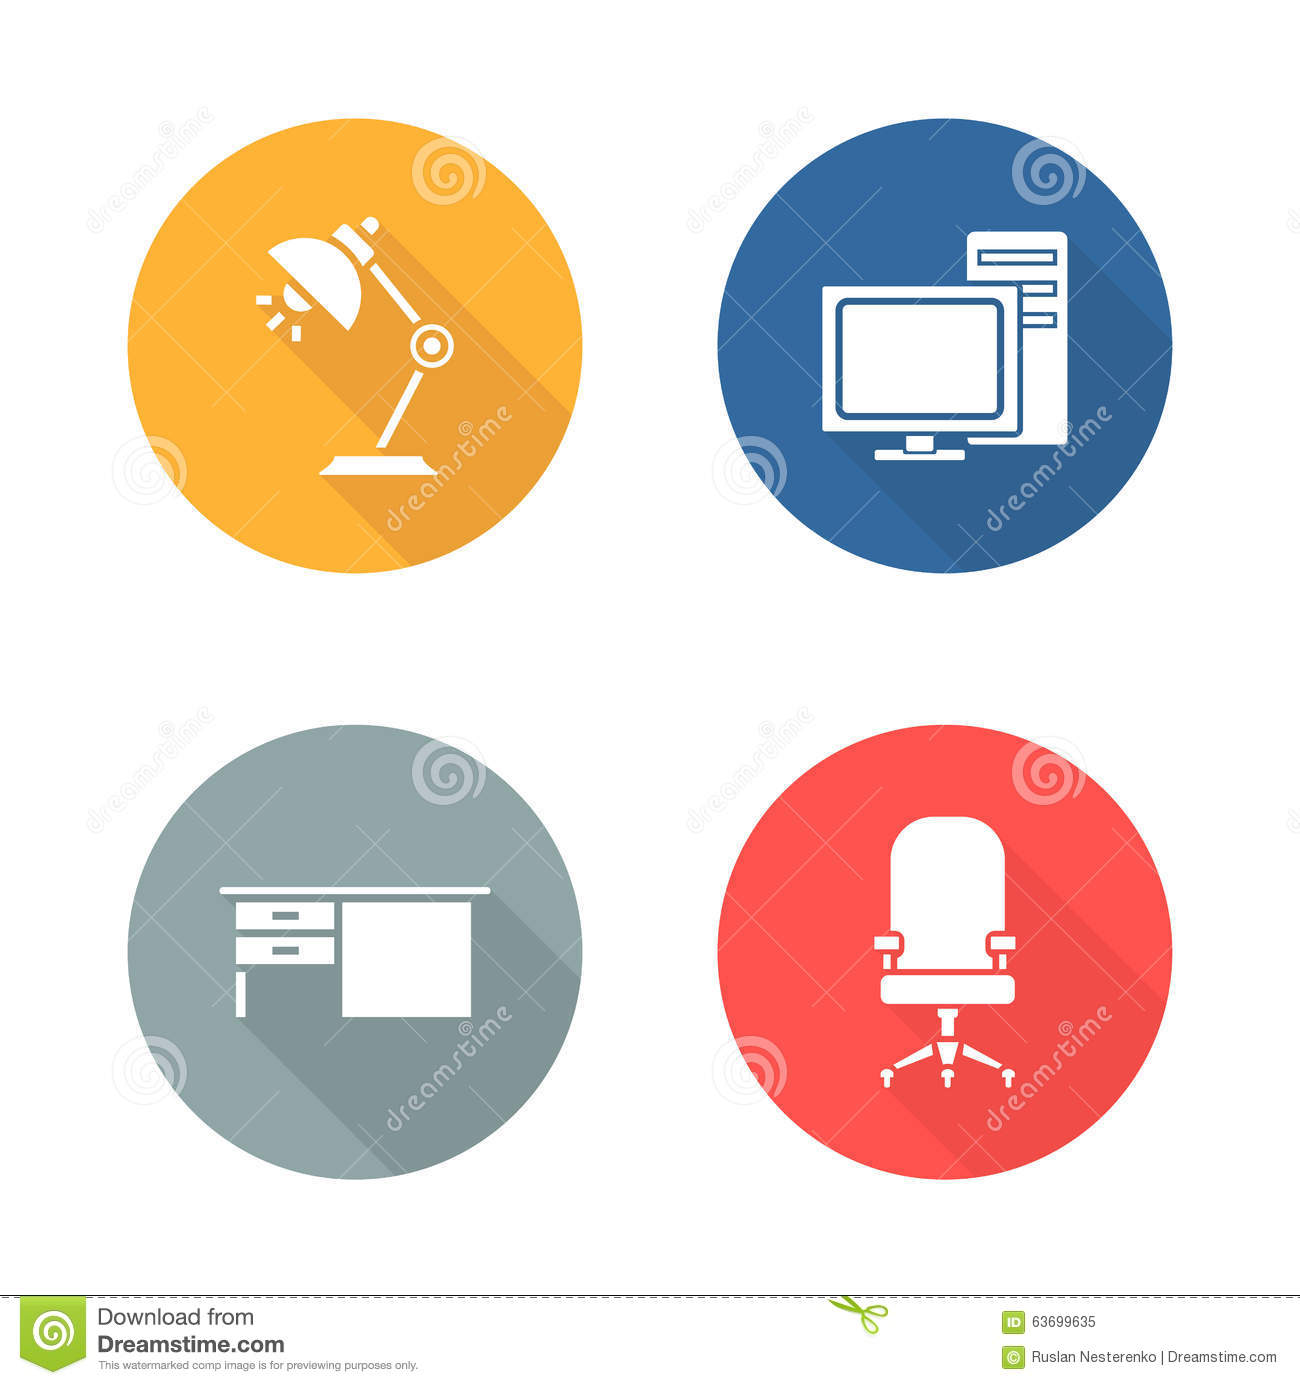 computer desk and chair set back massagers for chairs workplace flat design icon stock vector - image: 63699635